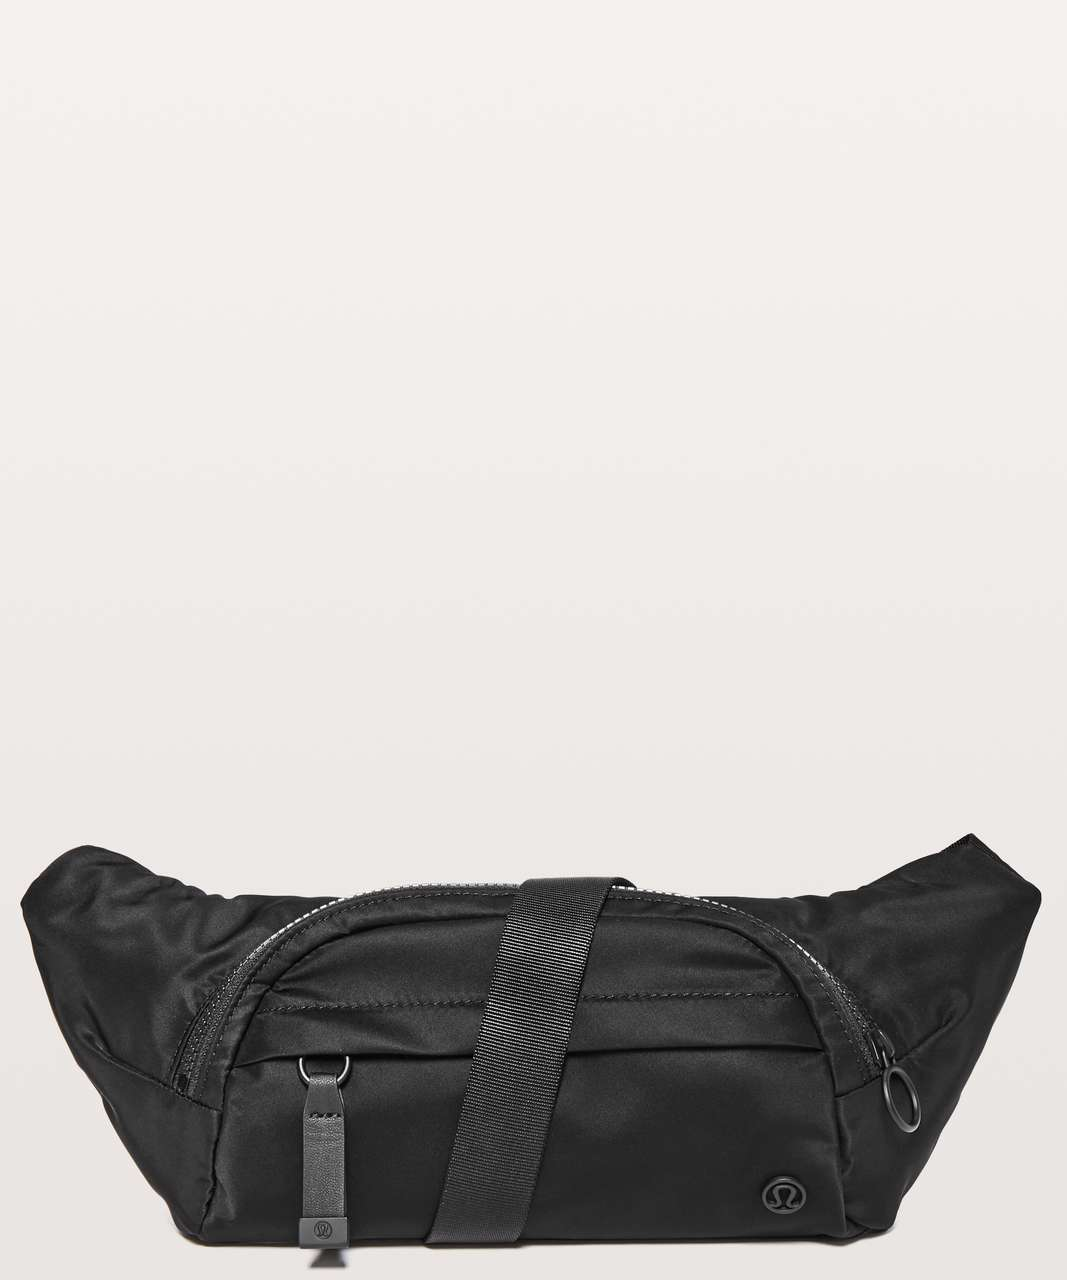 Lululemon On The Beat Belt Bag - Black